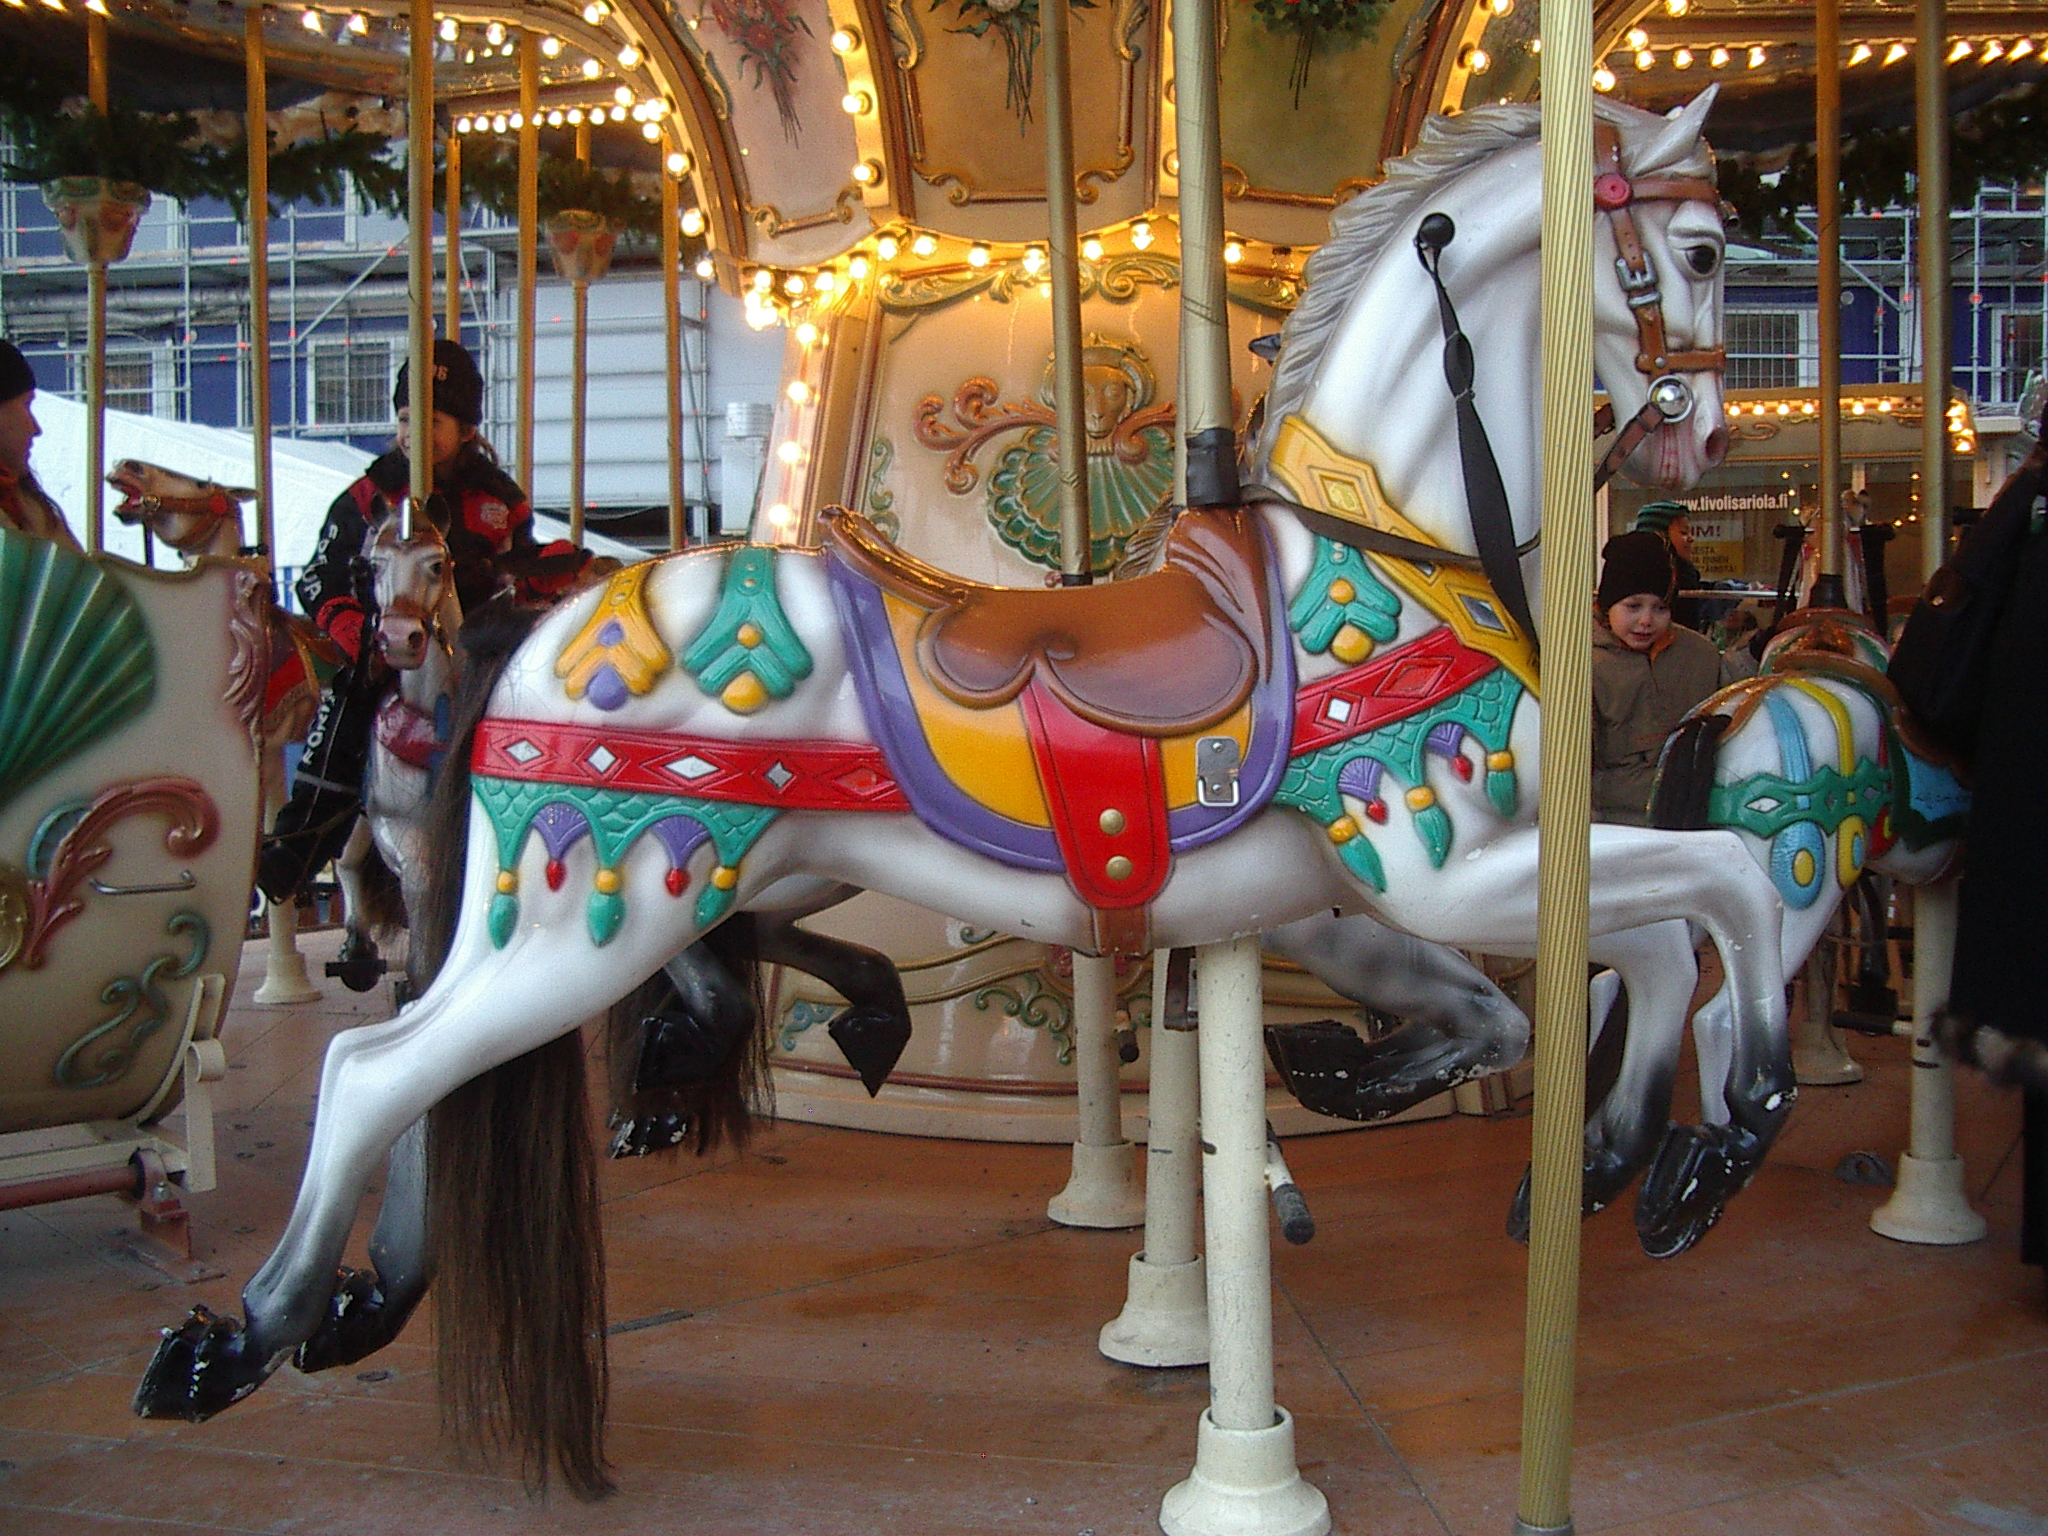 https://upload.wikimedia.org/wikipedia/commons/b/b6/Carousel_horse.jpg